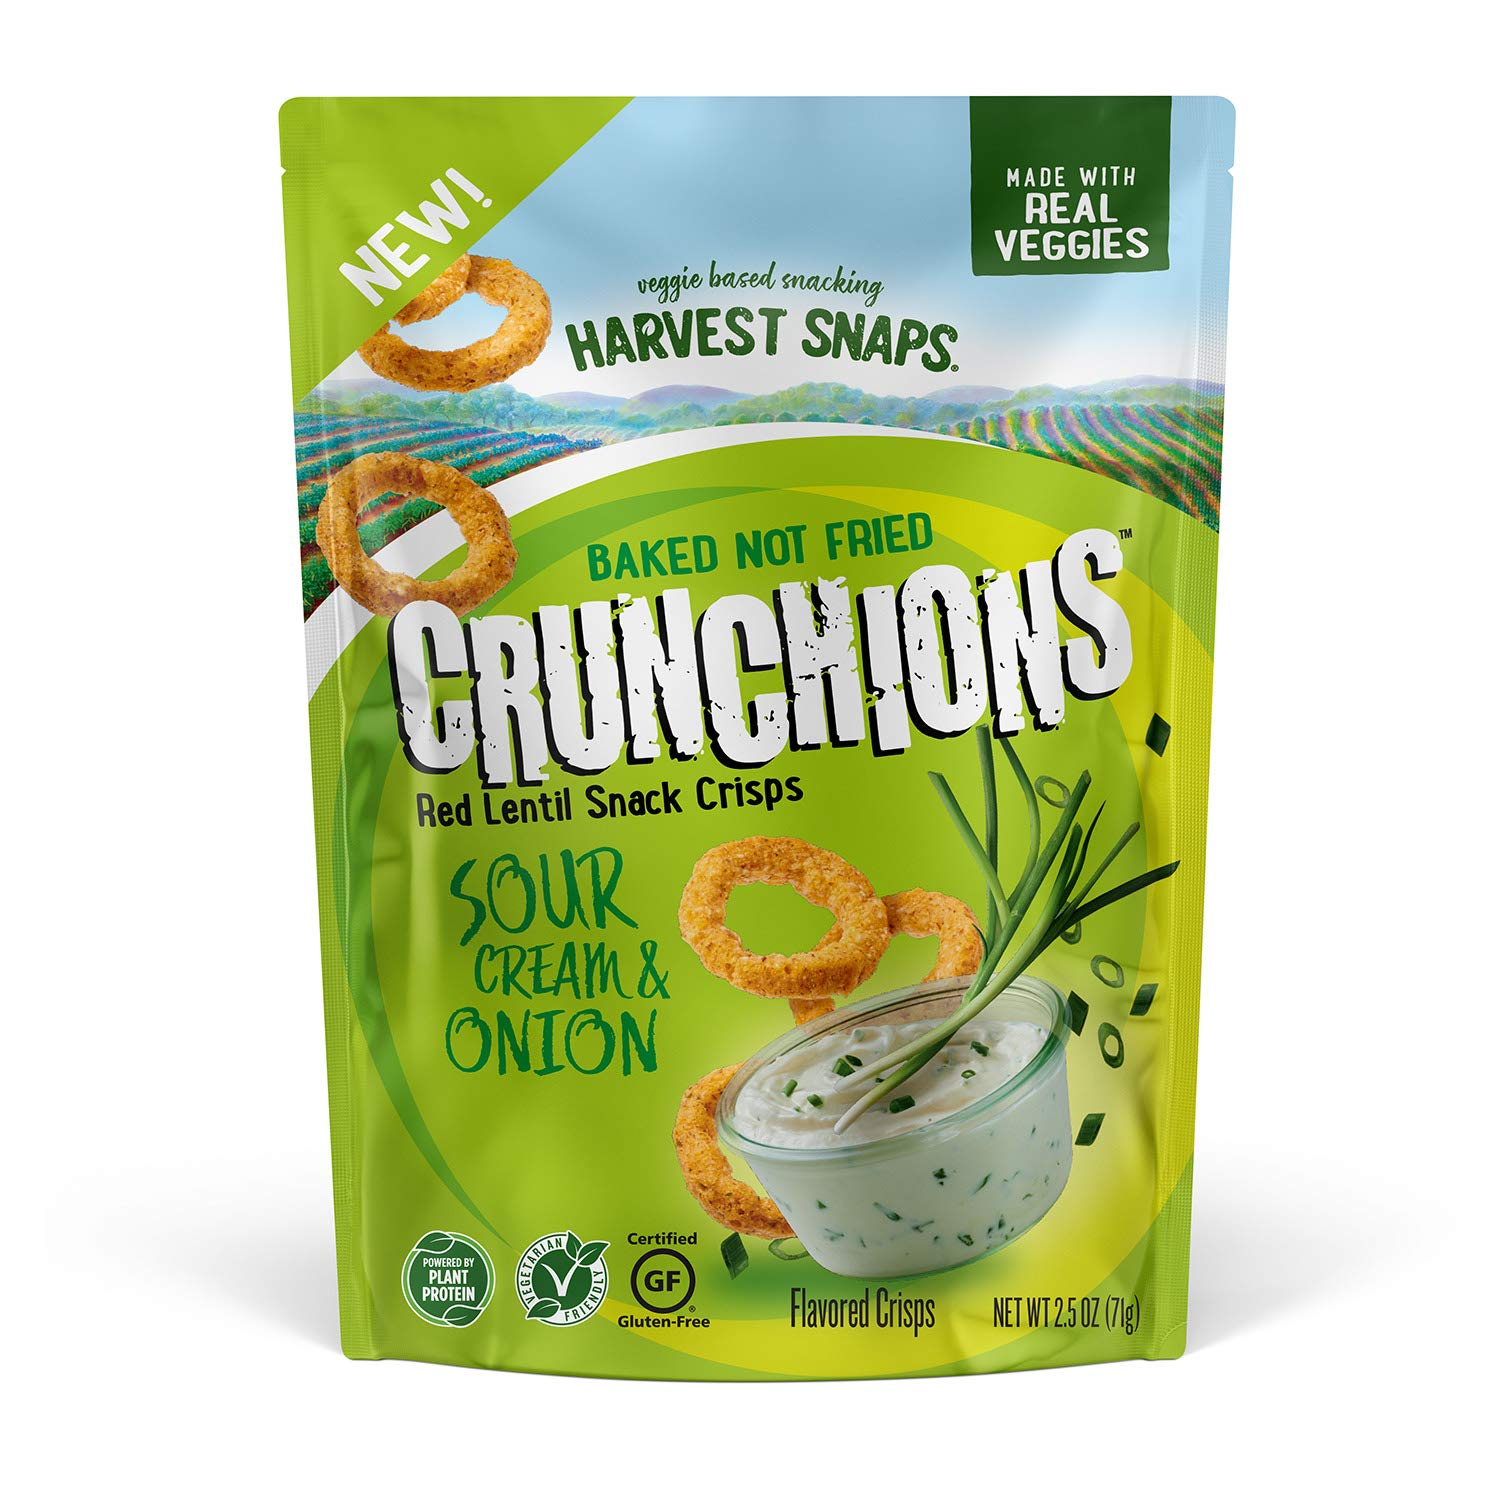 Harvest Snaps Red Lentil Crunchions Sour Cream Onion 2.5 Oz Pack PlantBased Baked Never Fried No Artificial Flavors or Preservatives 3, 3 Count